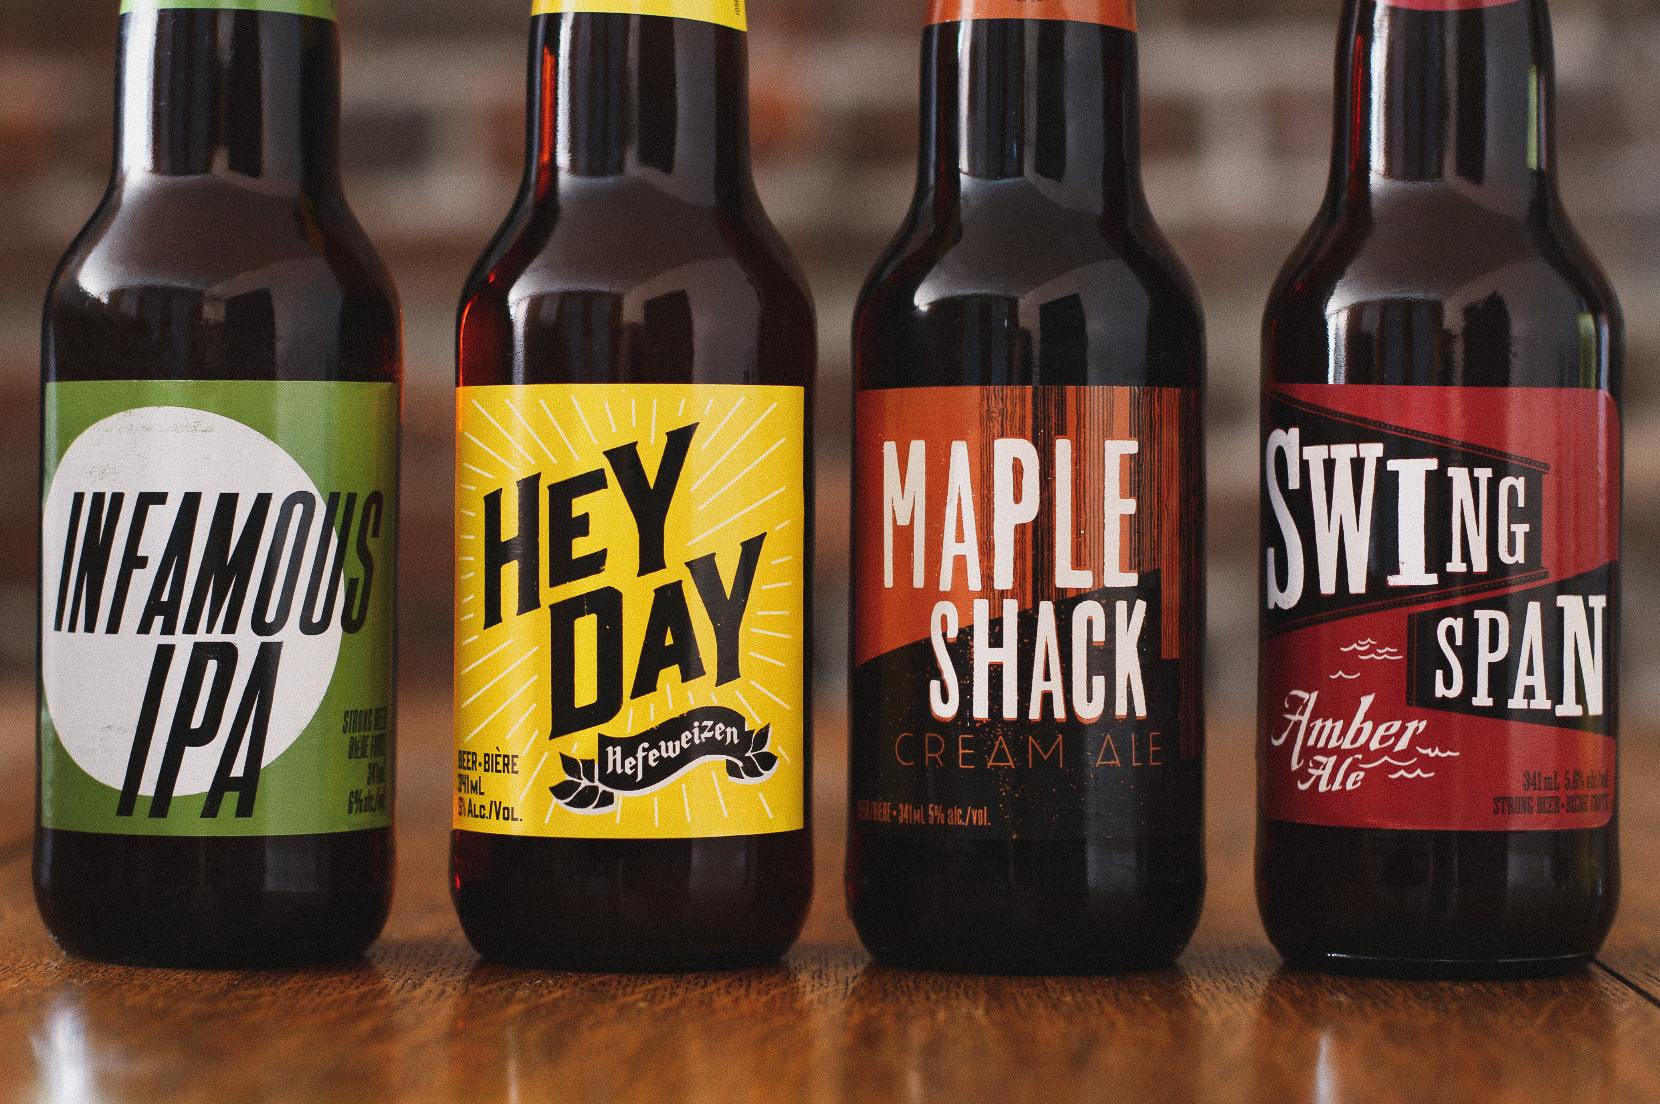 Craft beer brand design and product packaging for the under the bridge series showing bold visual aesthetic